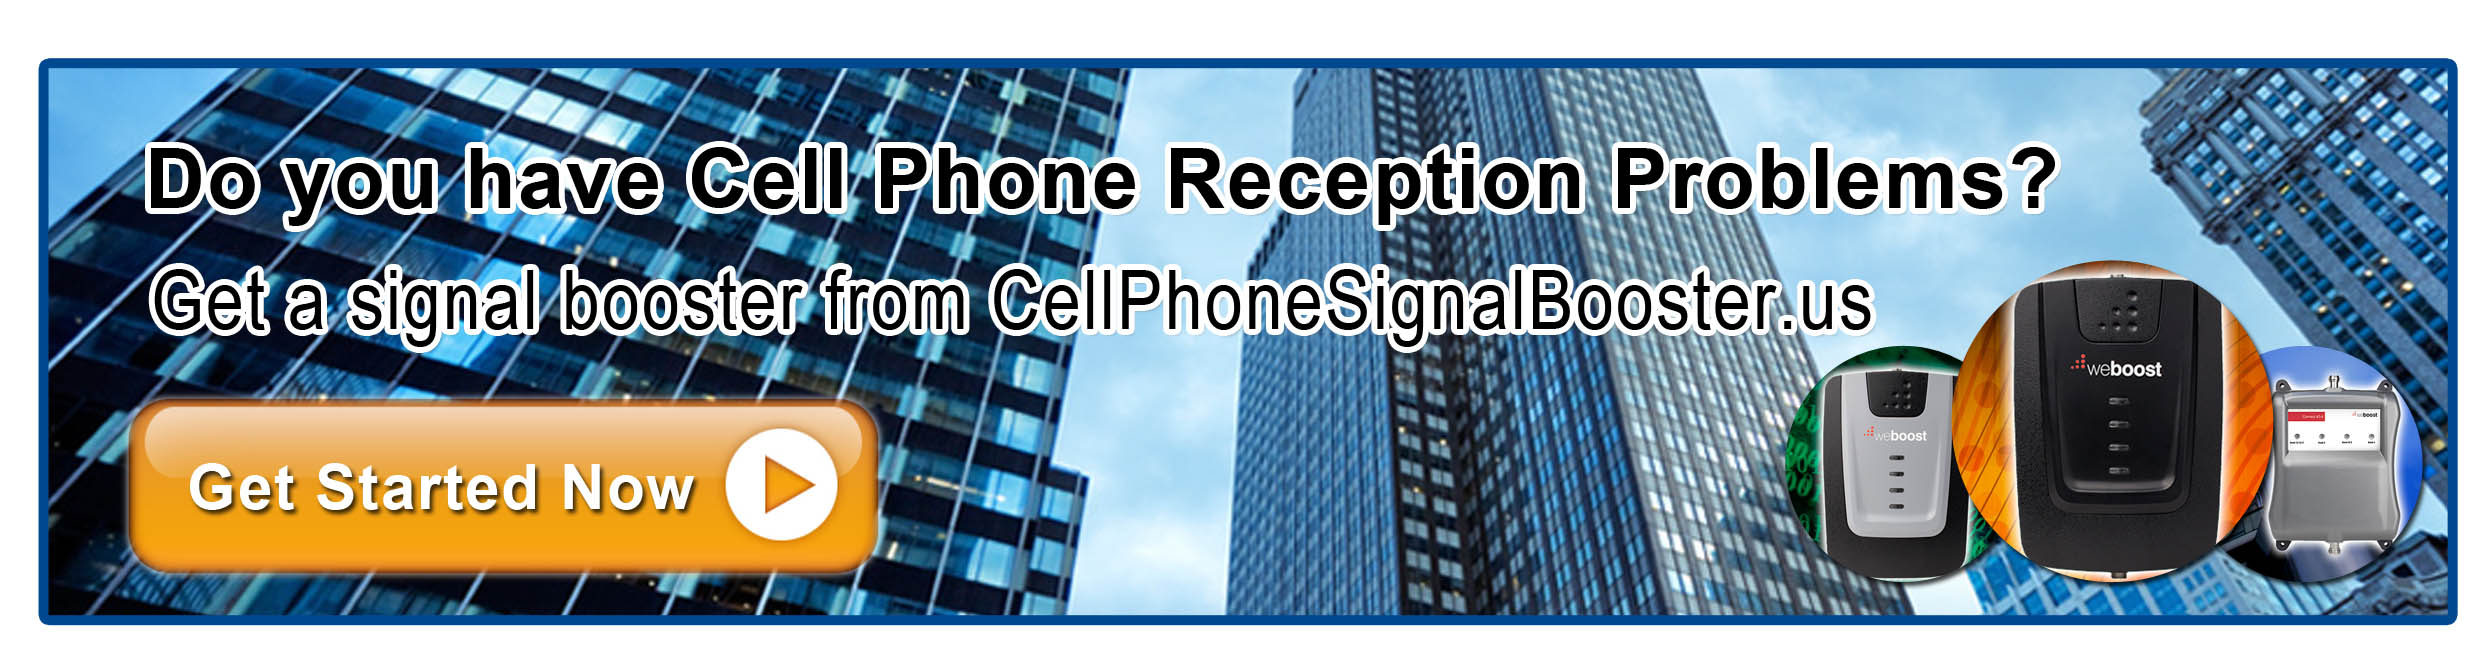 Buy a cell phone signal booster, today!